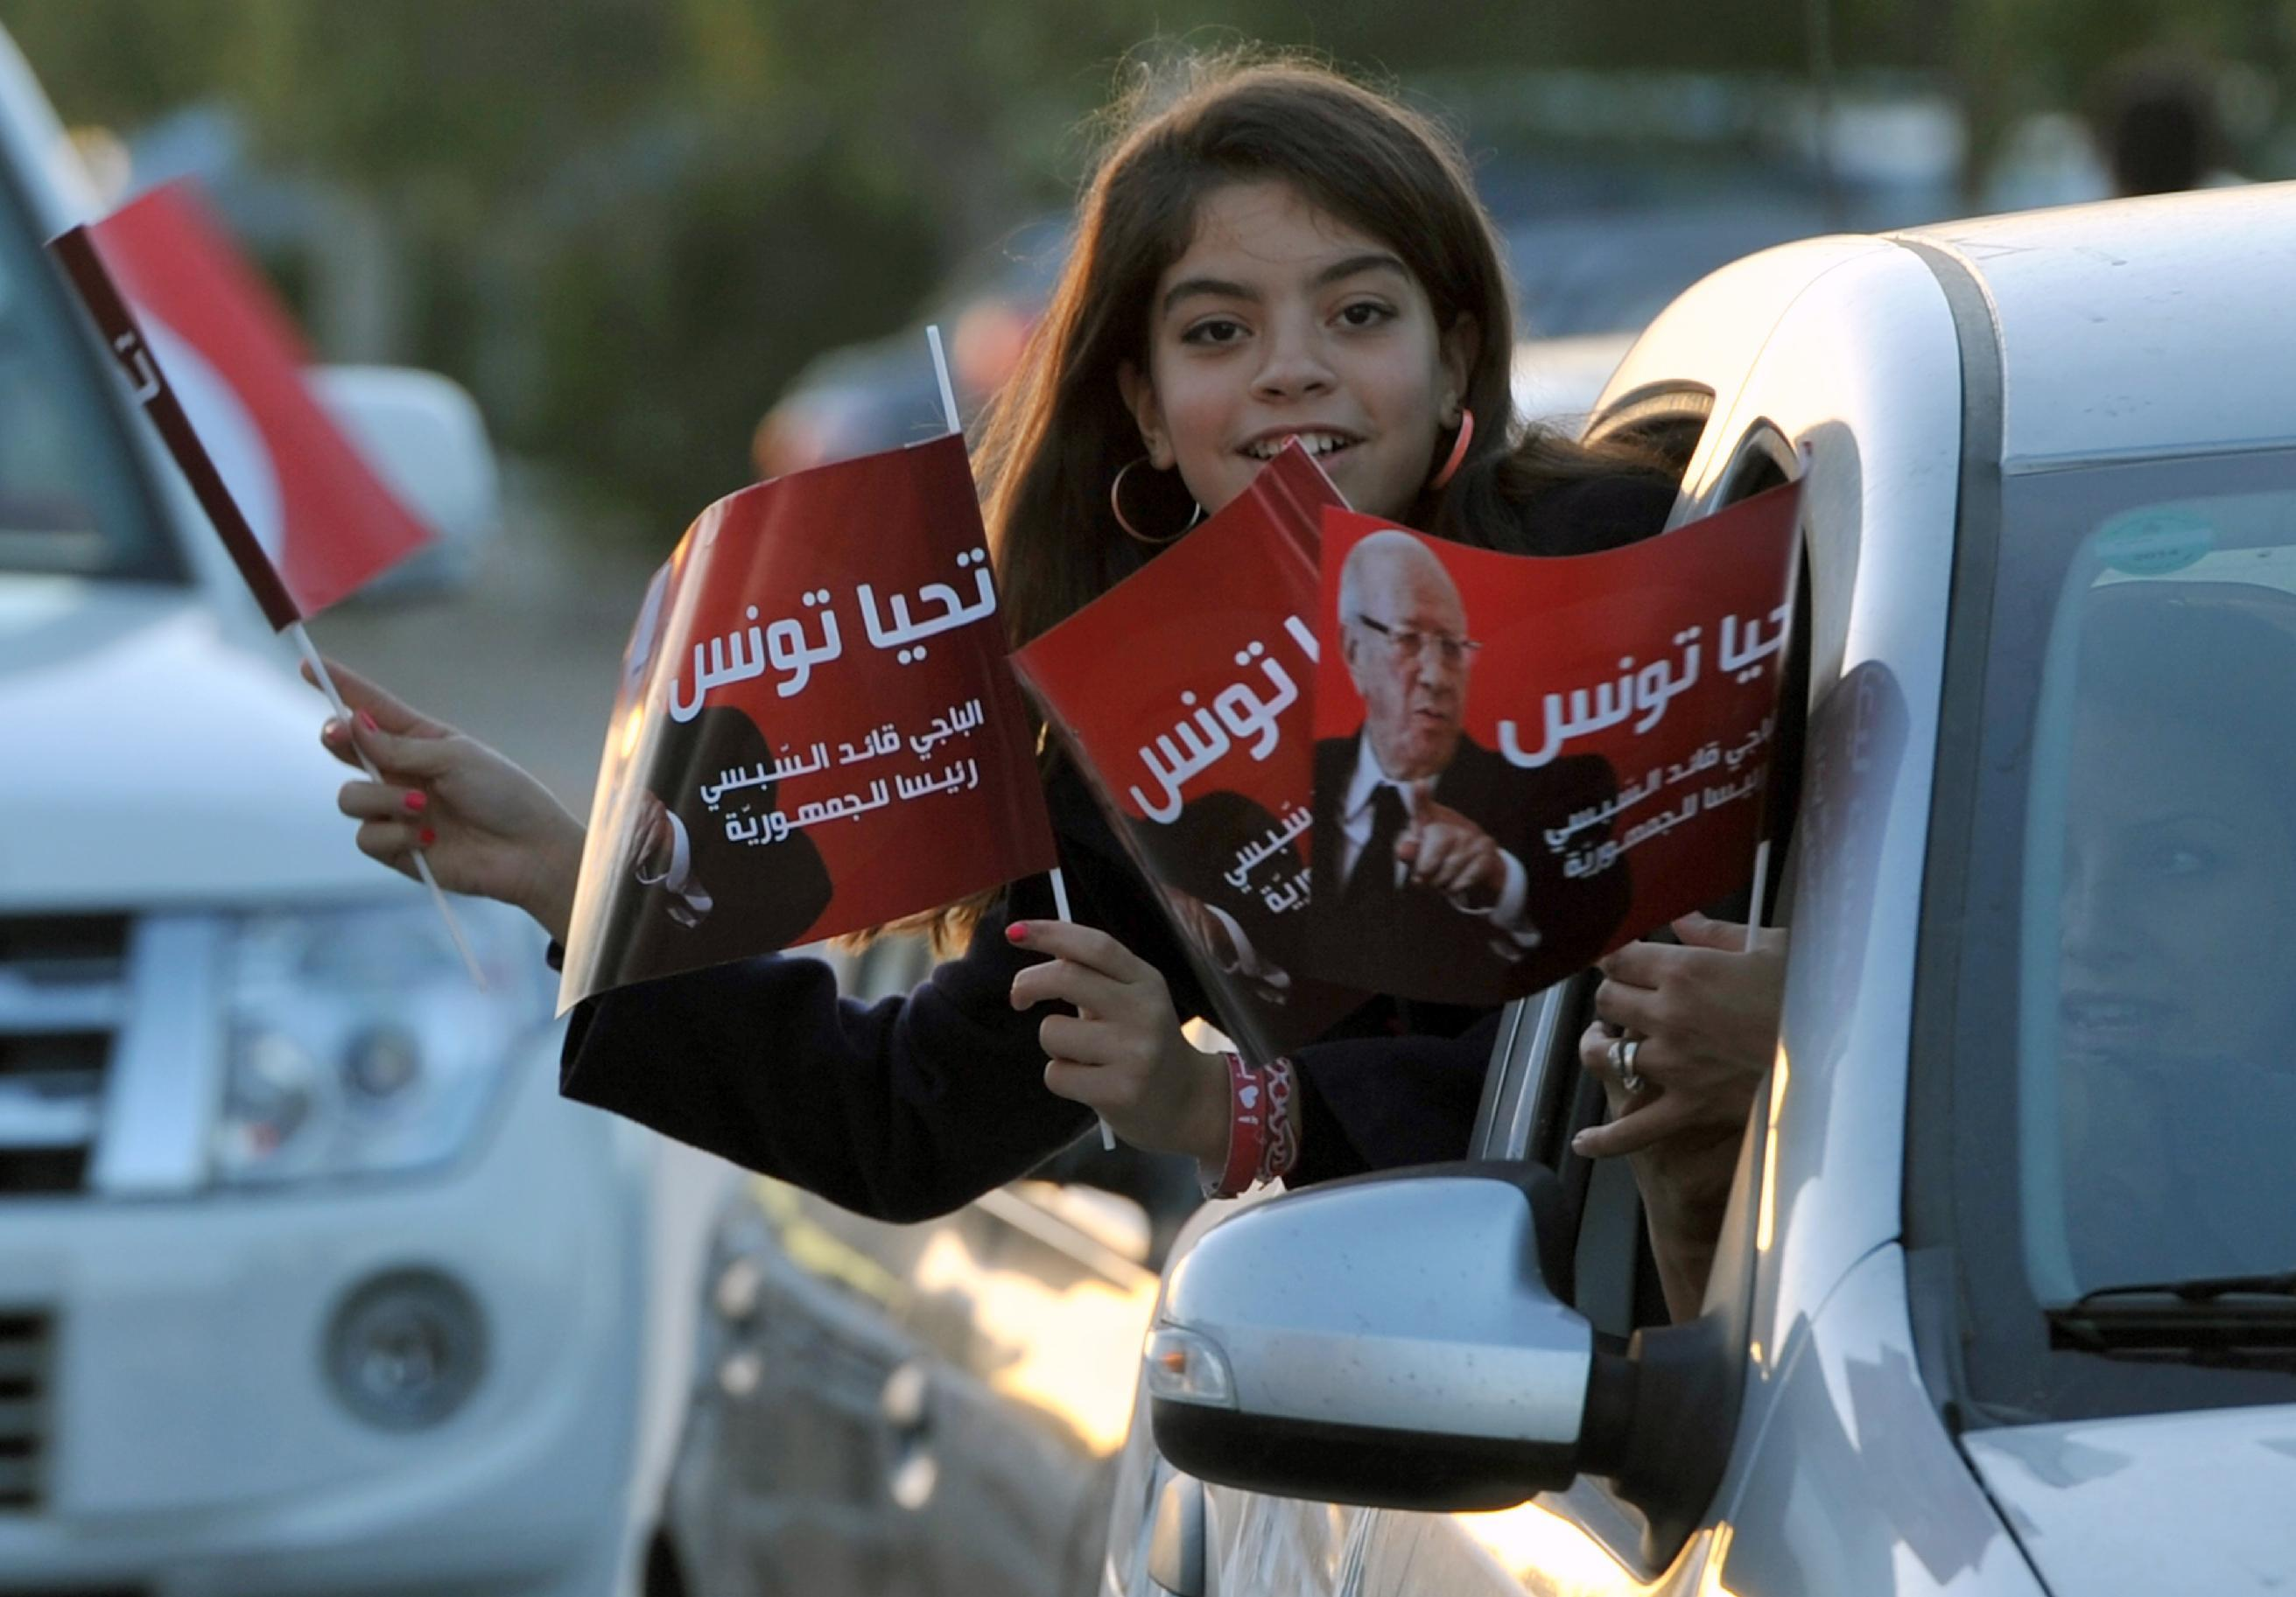 A young supporter of newly-elected President Beji Caid Essebsi celebrates his victory on December 22, 2014 in Tunis (AFP Photo/Fethi Belaid)